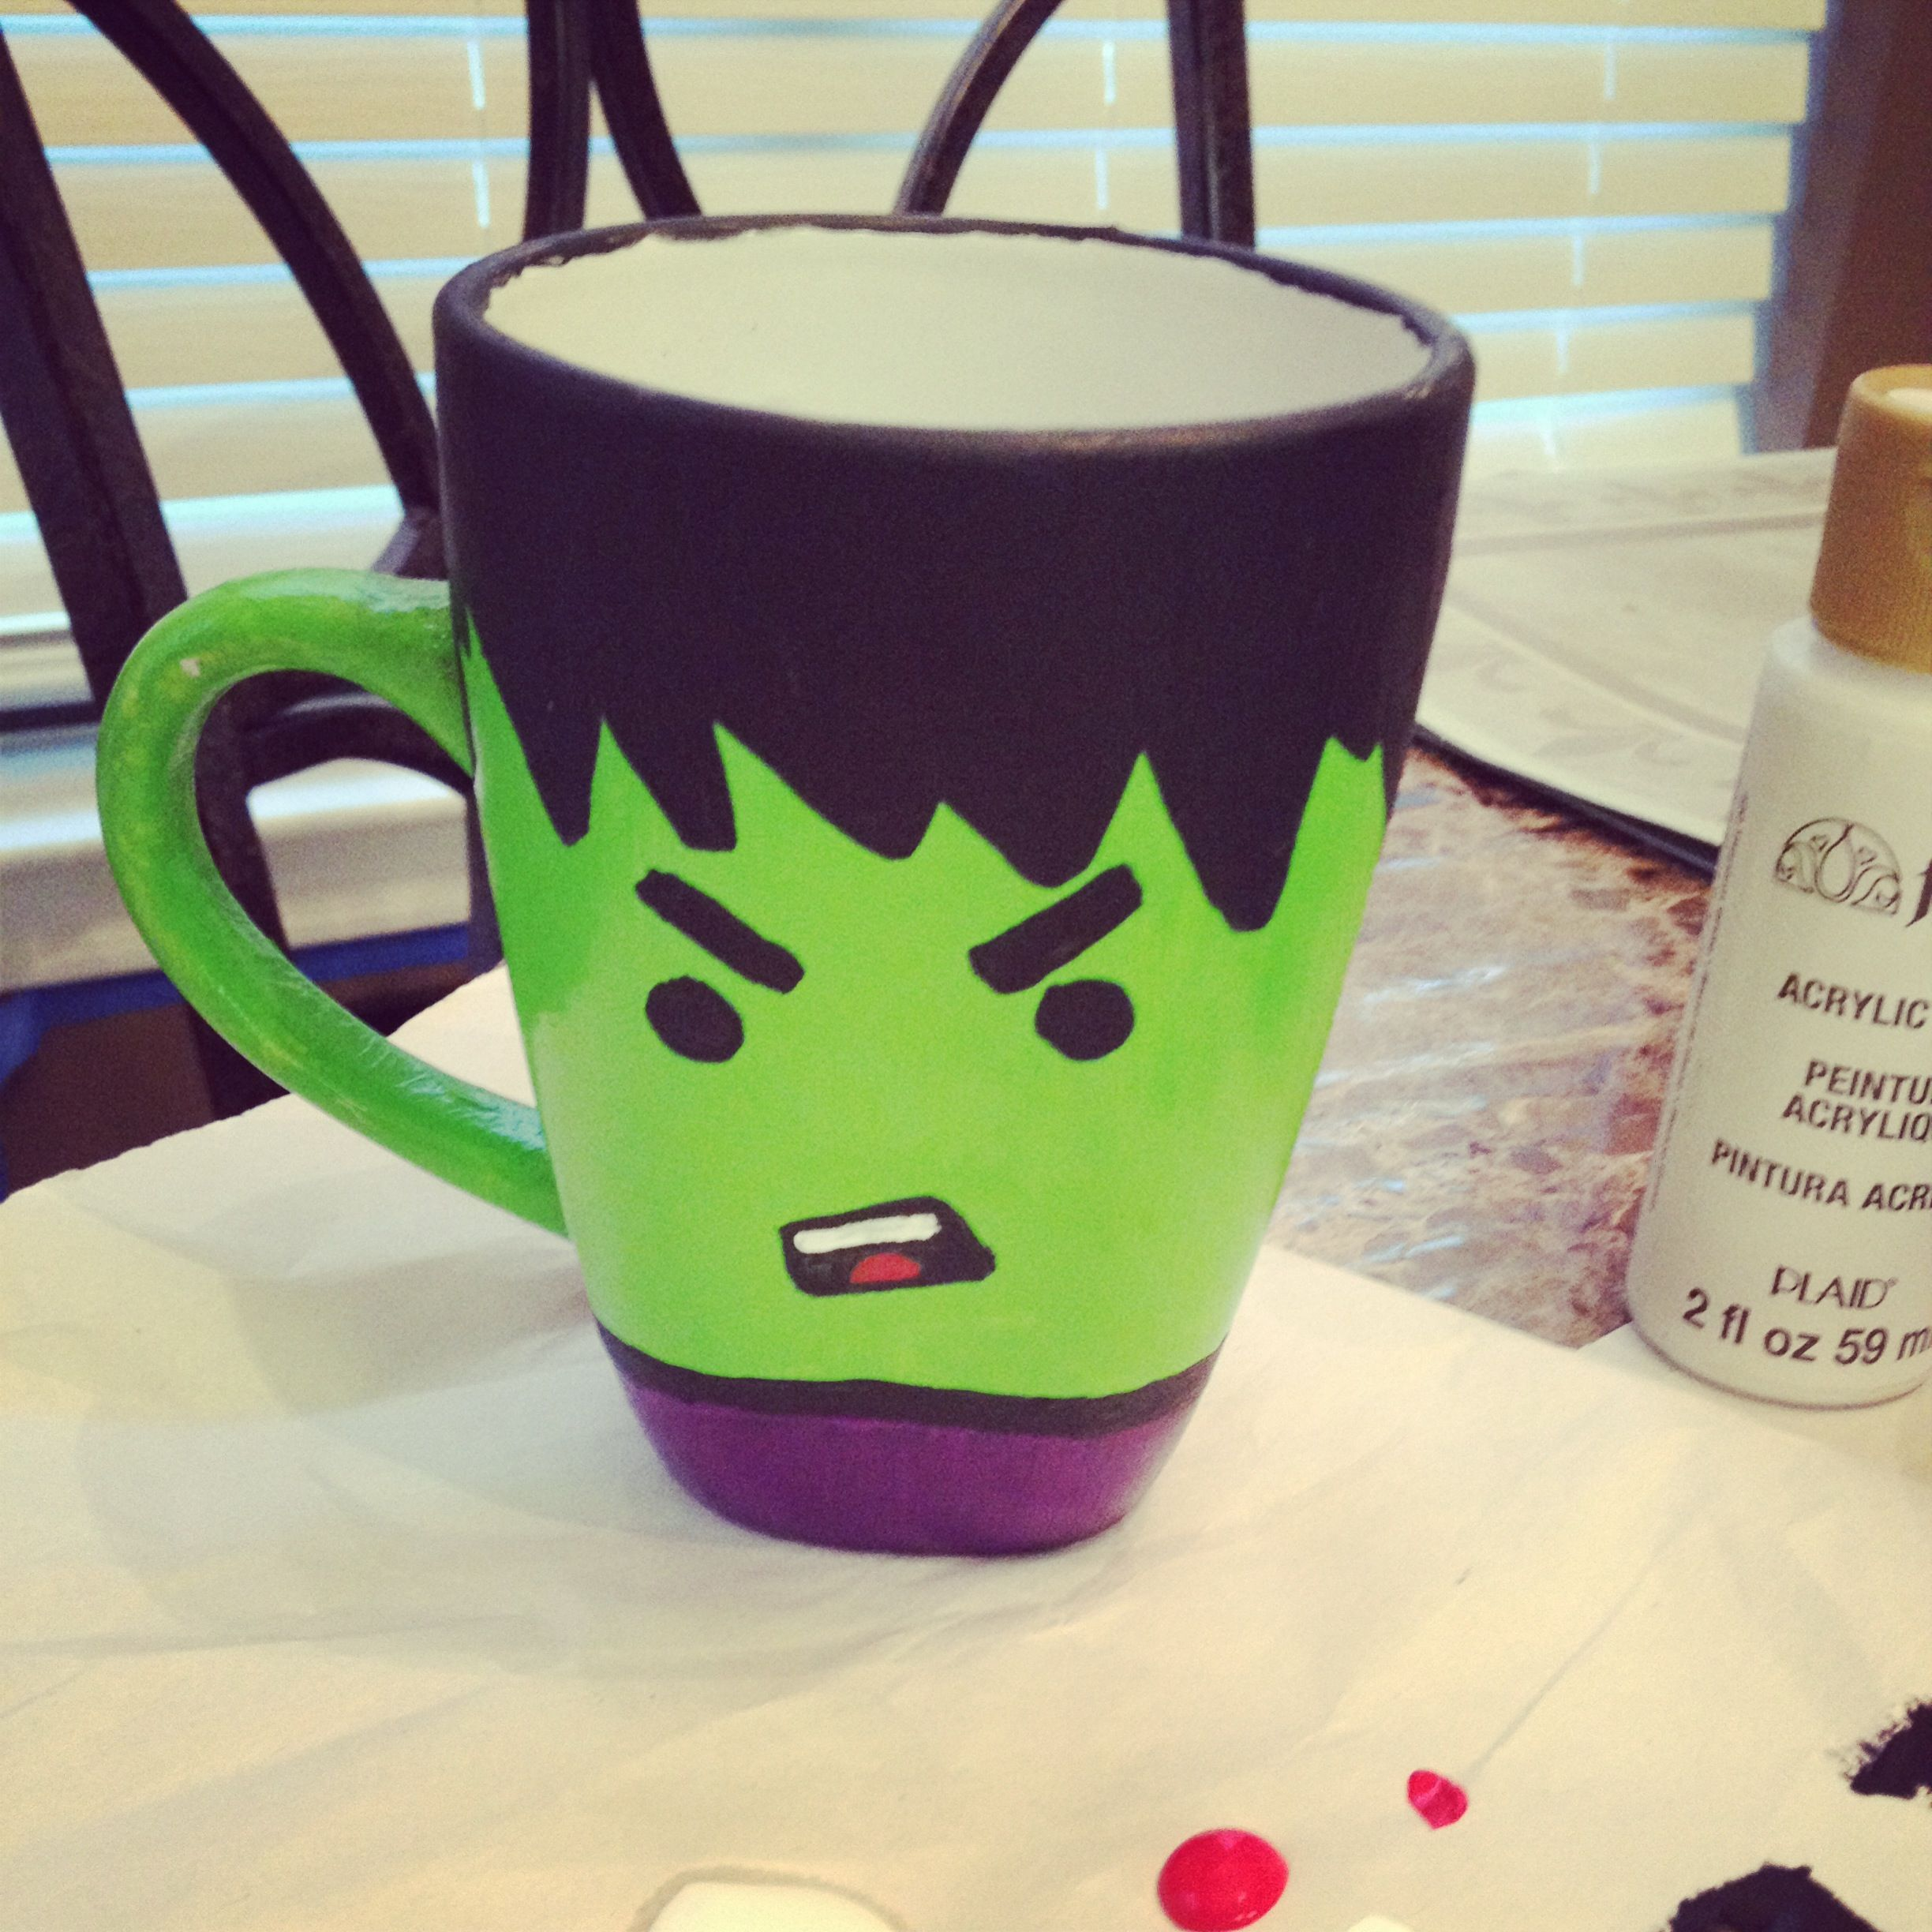 Mini Hulk Ceramic Mug One Pinner Stated The Boyfriend Is A Fan So I Made This Him For His Birthday Got Idea From Etsy